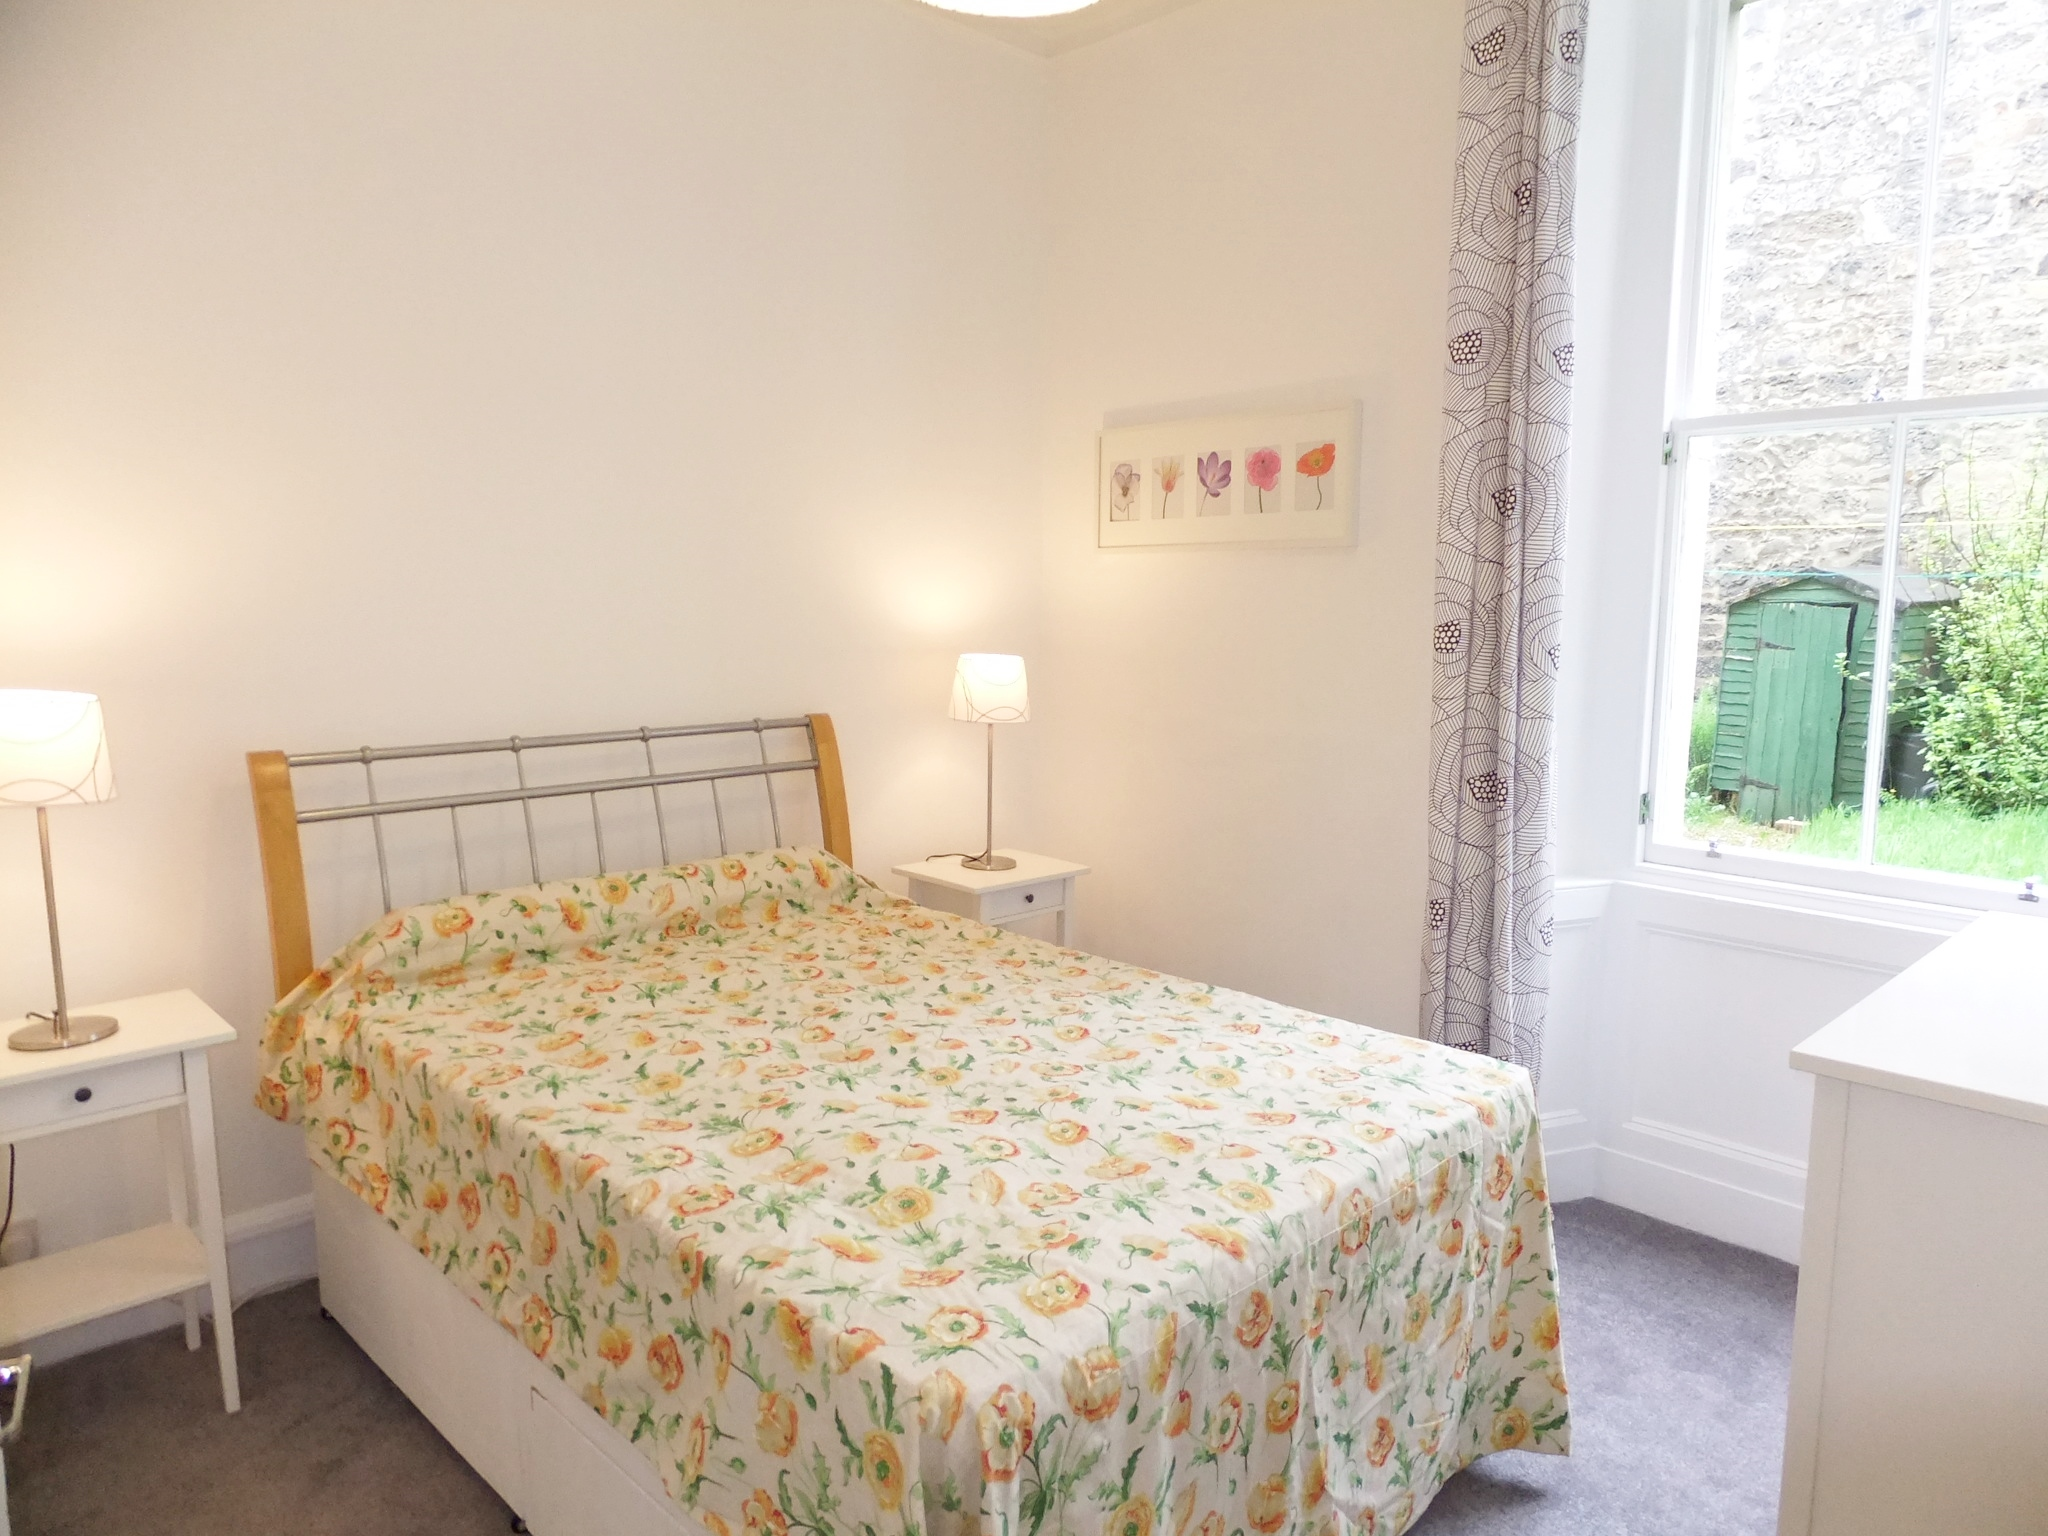 Comely Bank Row 3 f1 Bedroom 4